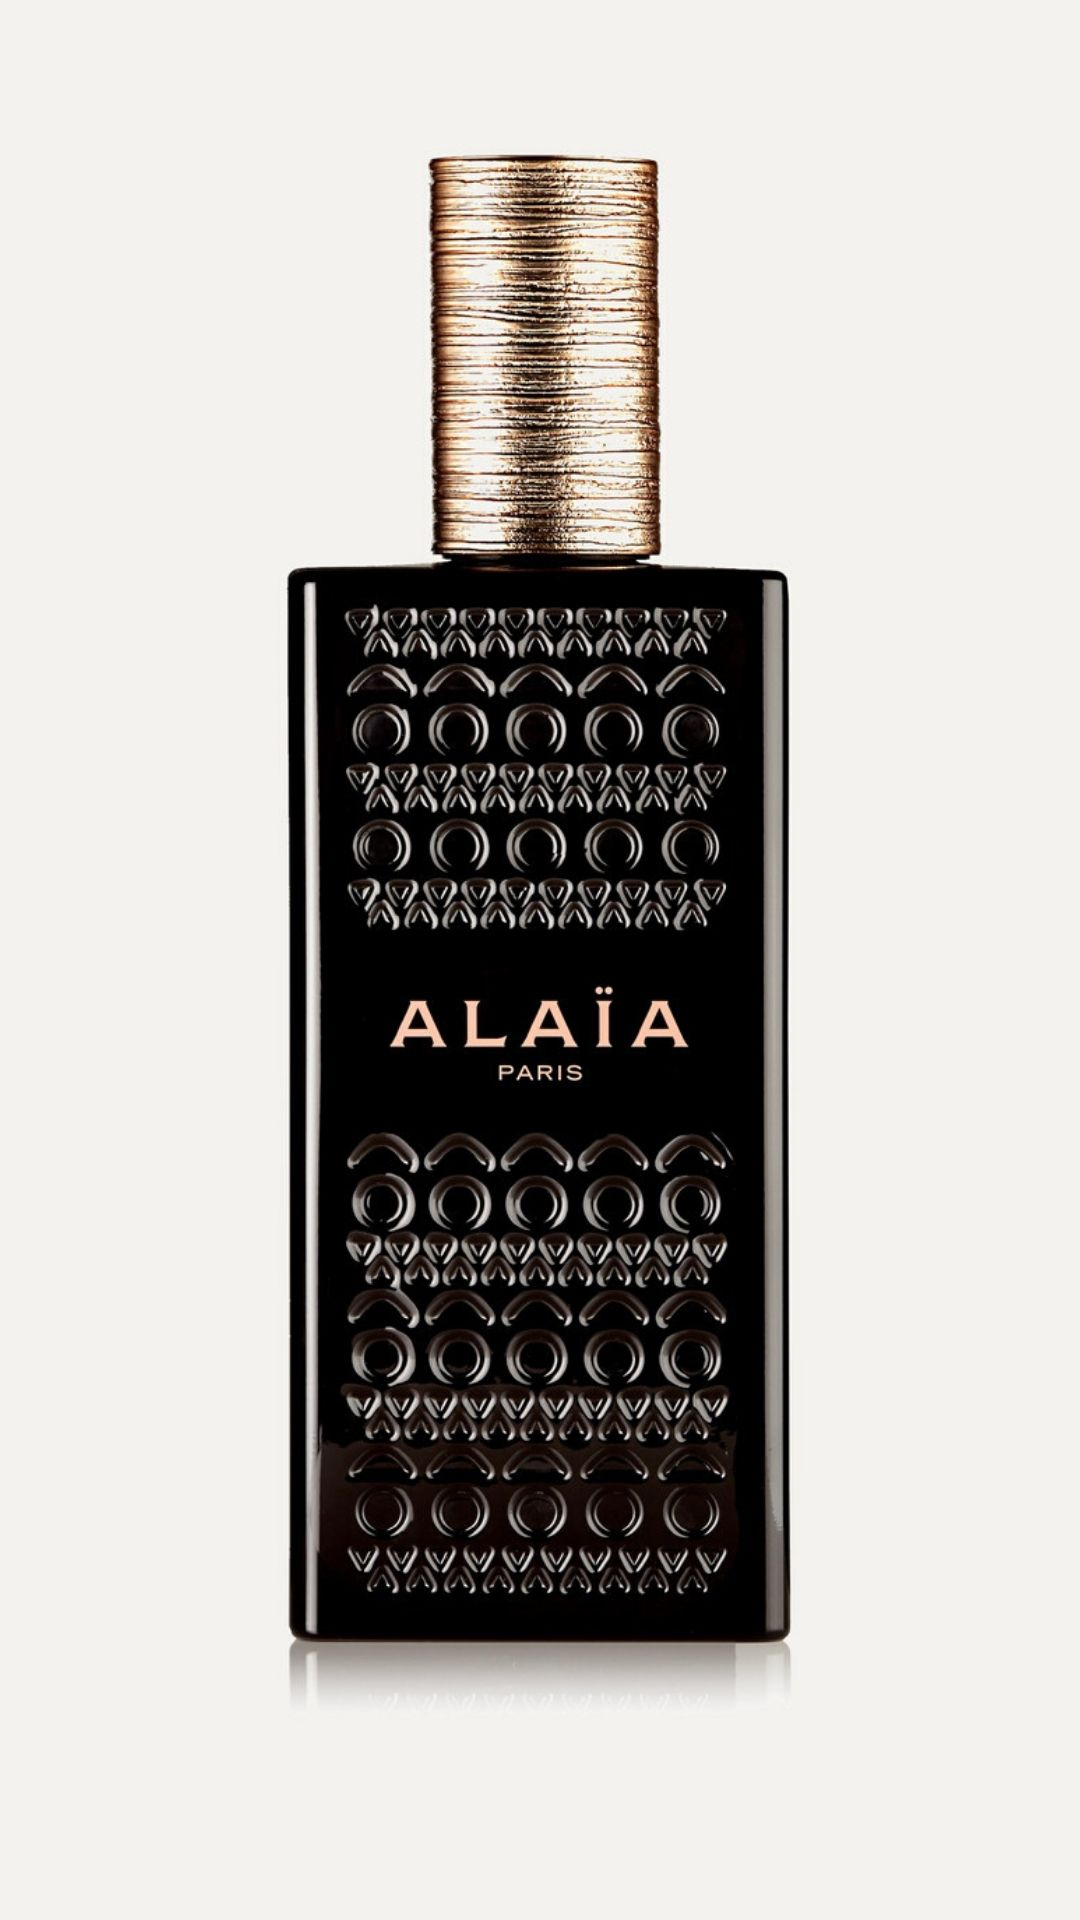 beauty, beauty list, beauty products, 2020, new year, sisley, chanel, tom ford, 111skin, alaia beauty, serge lutens